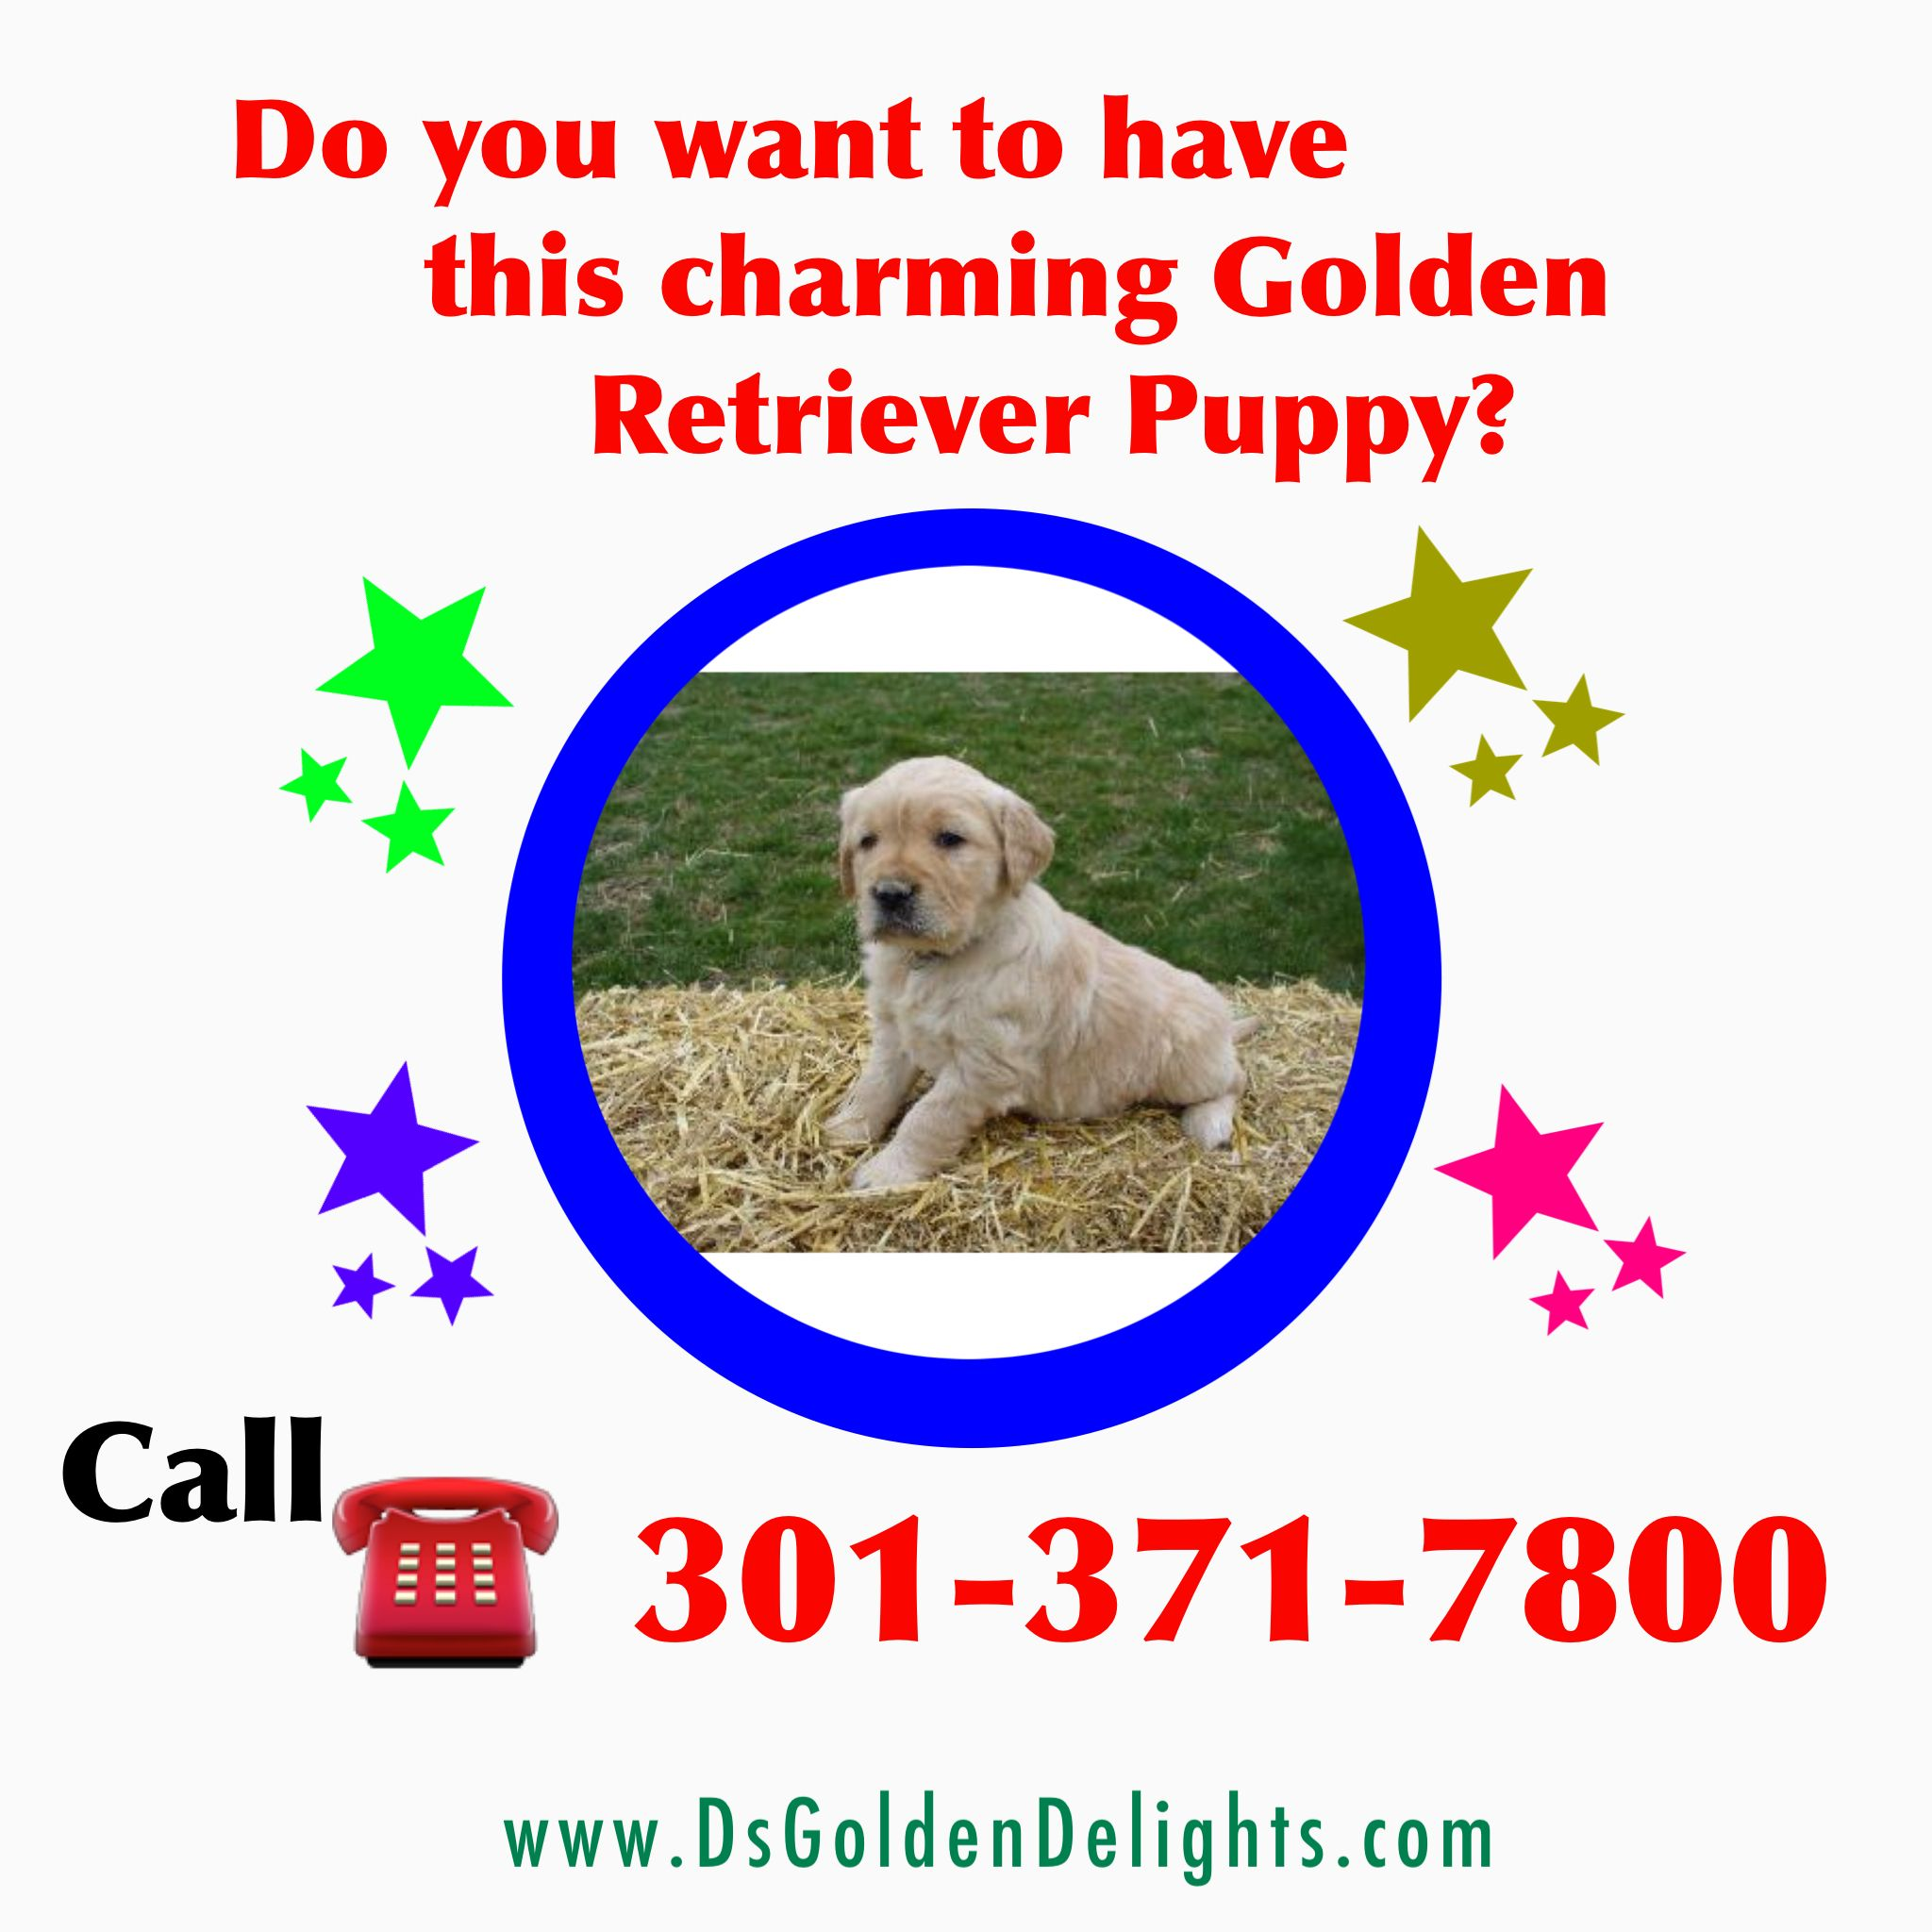 New York Golden Retriever Puppies Ds Golden Delights Golden